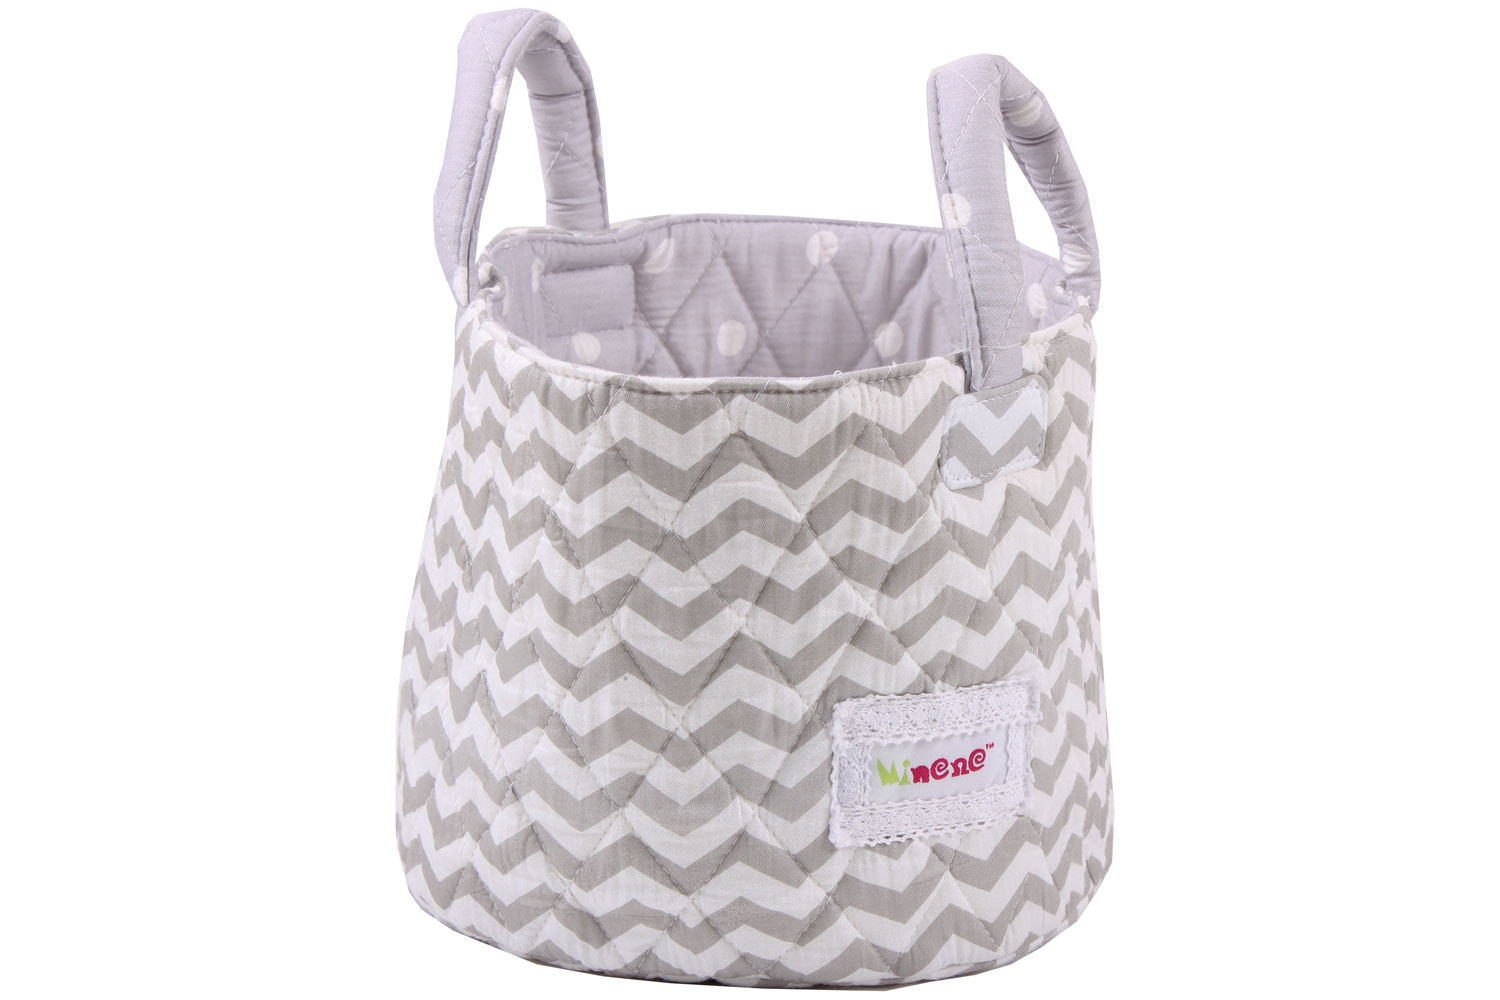 Minene Small Storage Basket | Chevron